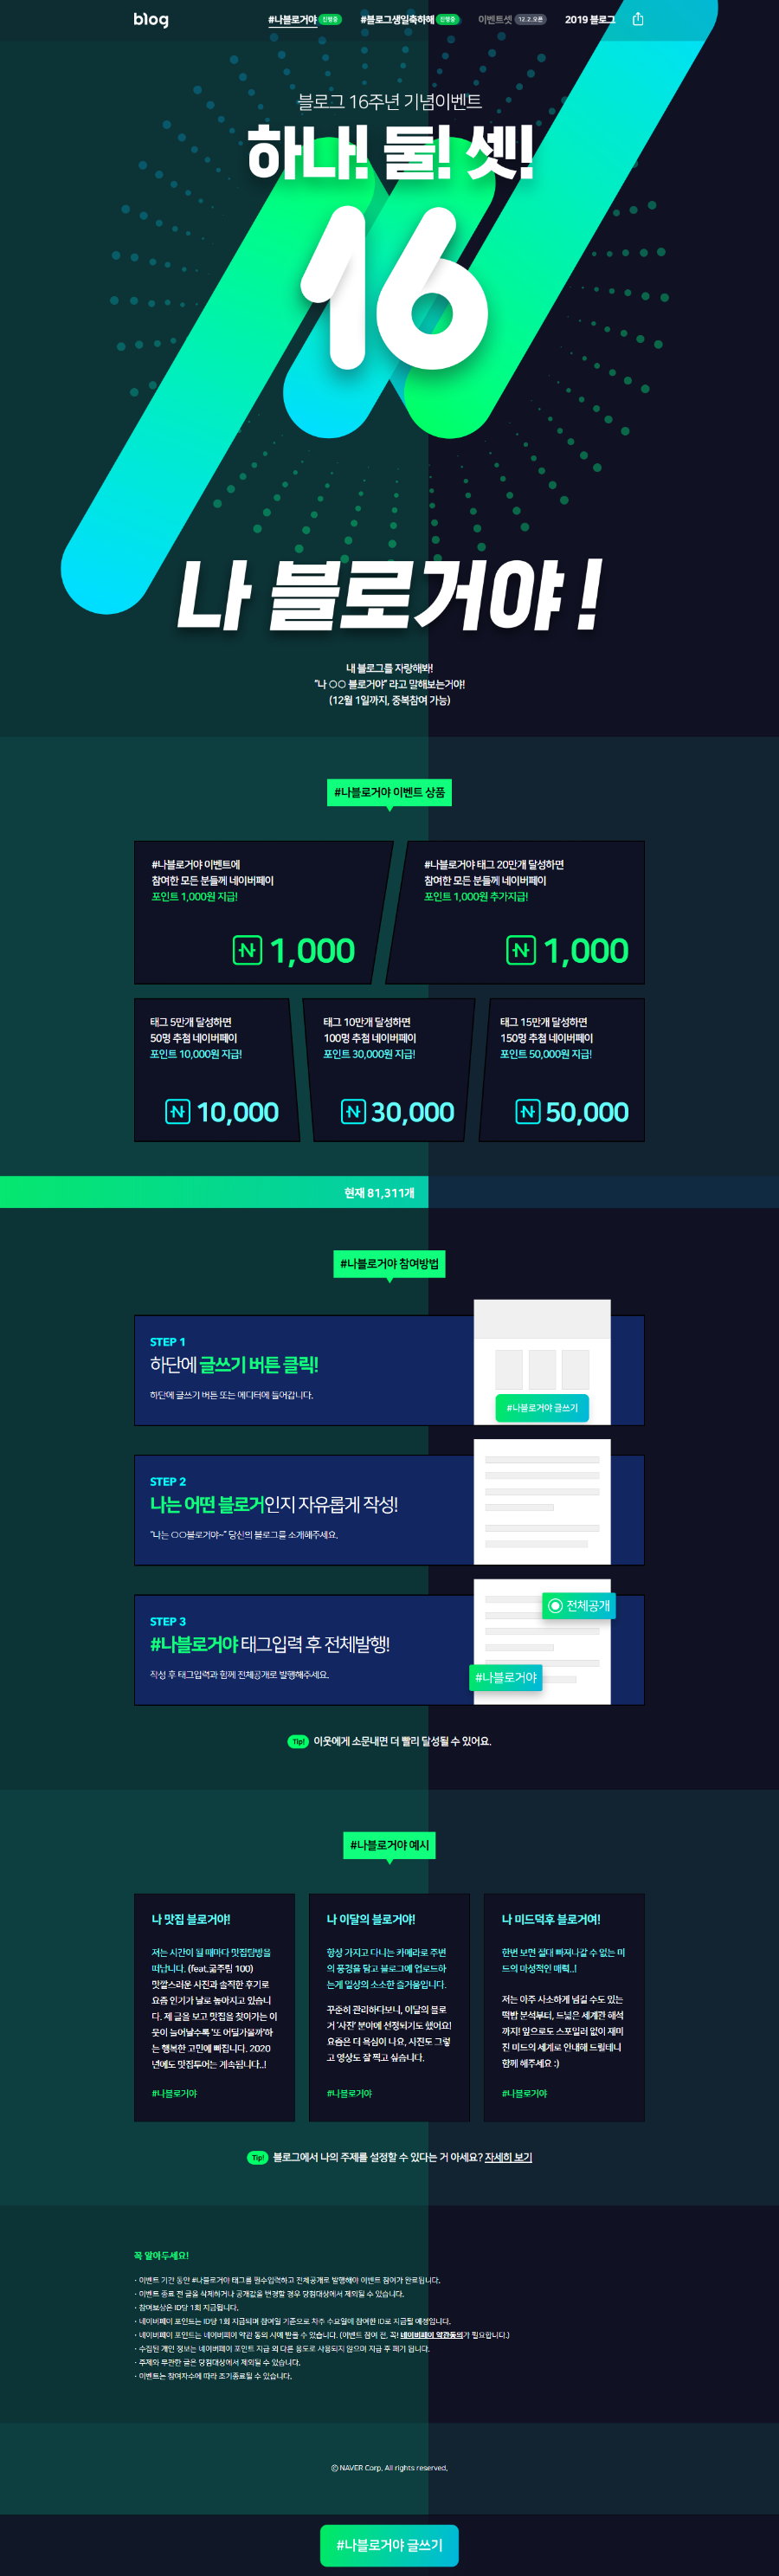 screencapture-campaign-naver-blog16-event1-nhn-2019-11-20-19_50_21.png